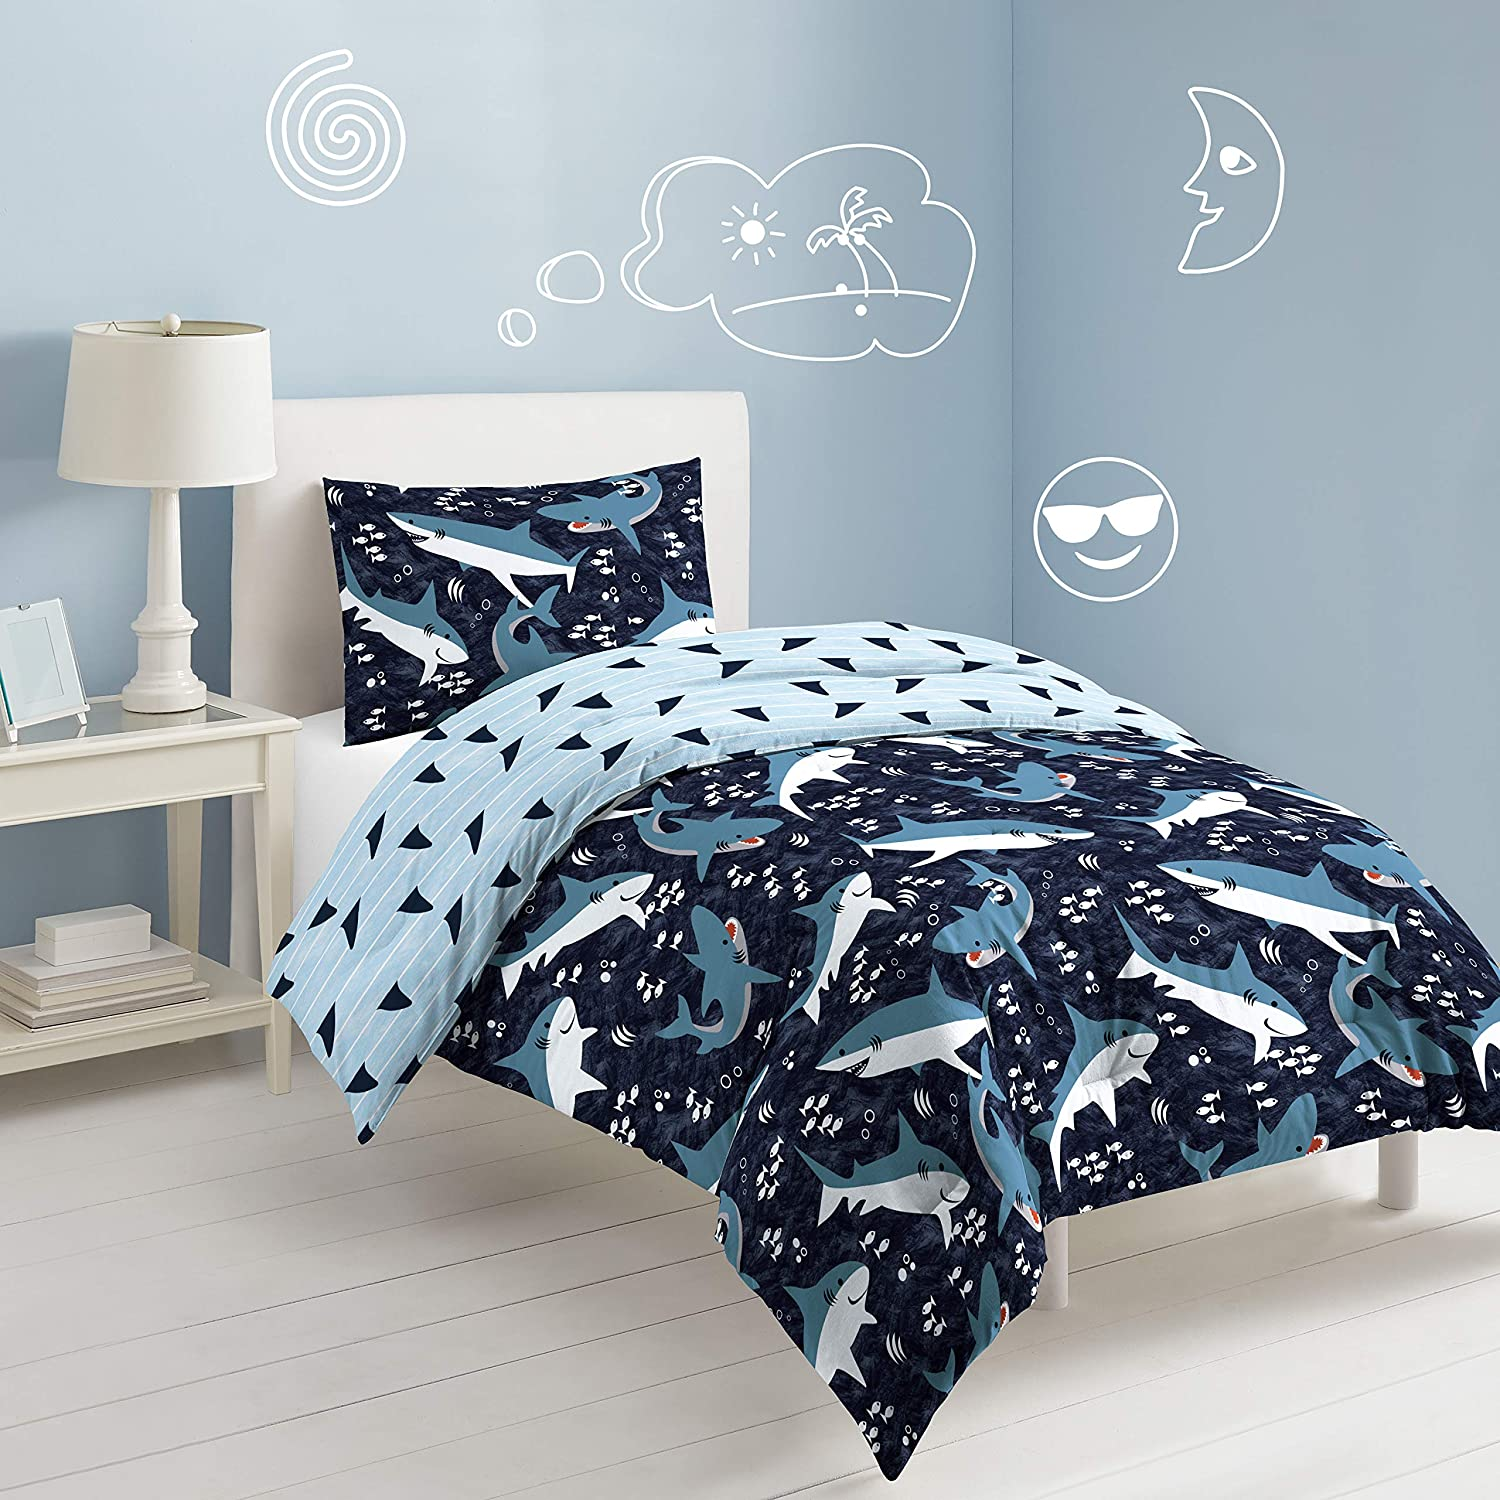 dream FACTORY Sharks Comforter Set, Full/Queen, Navy